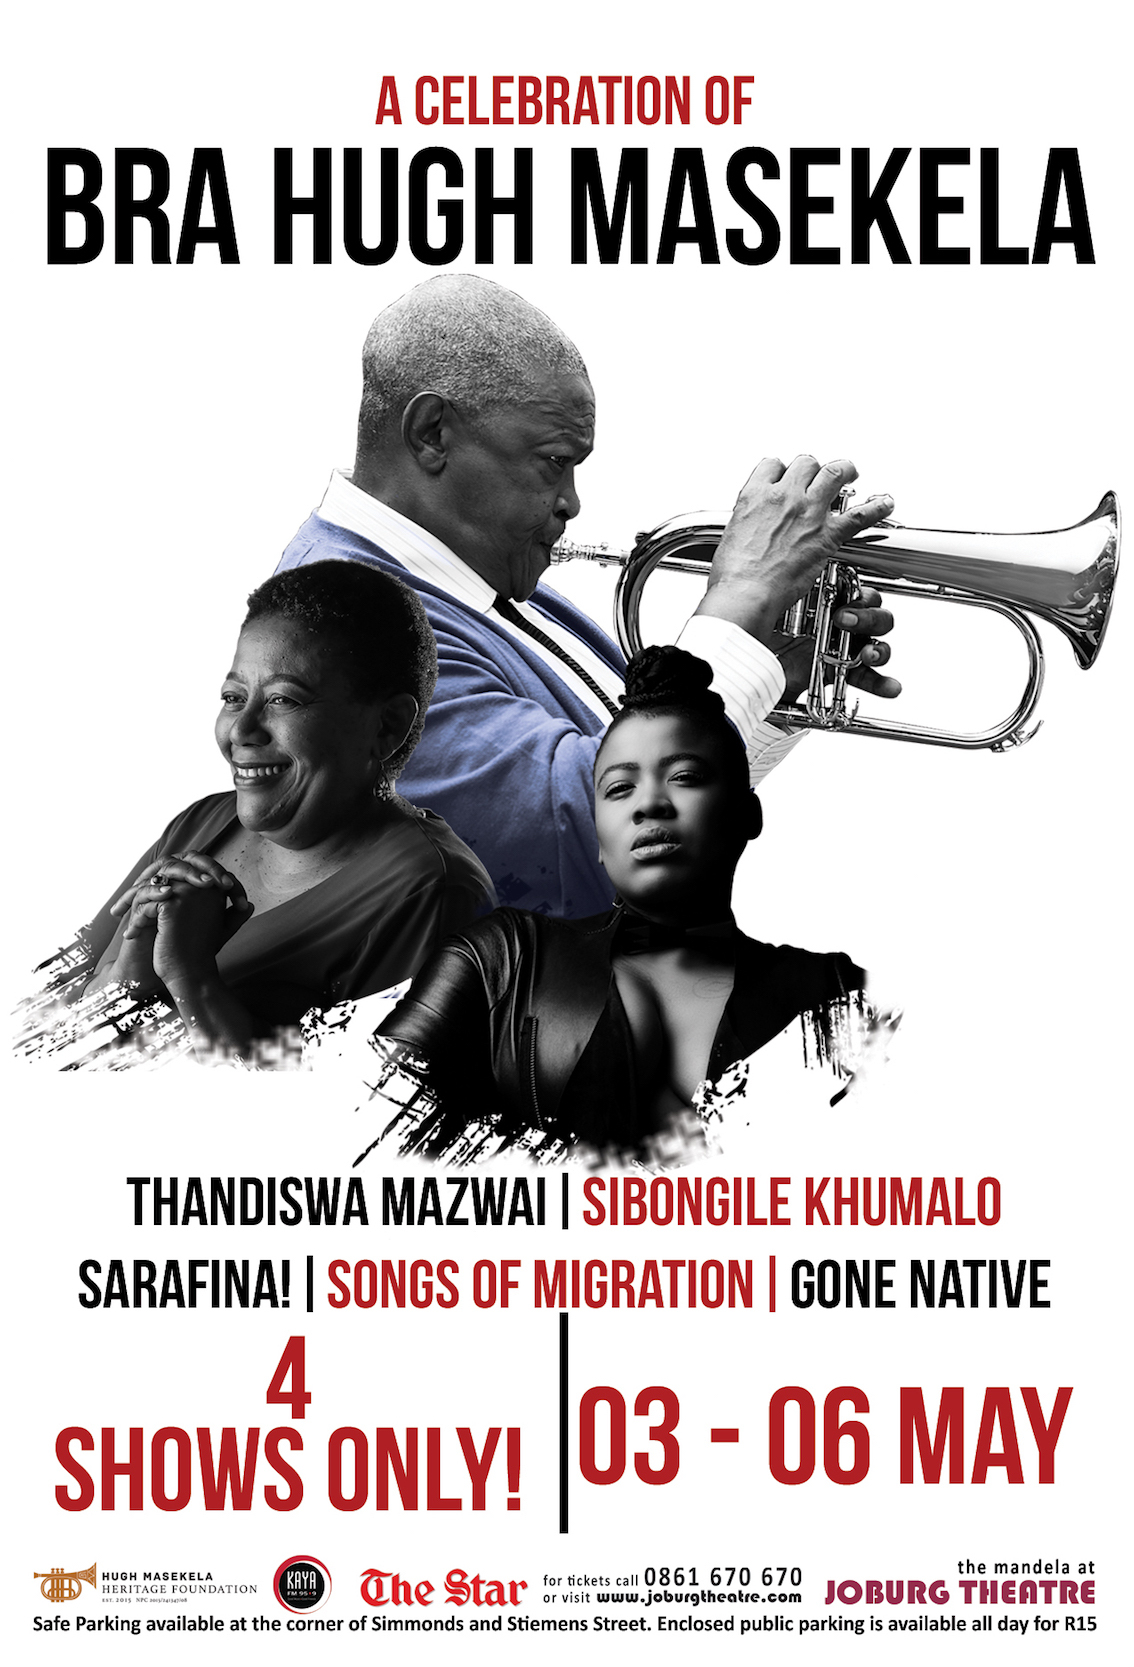 A CELEBRATION OF BRA HUGH MASEKELA – 4 shows only @ Joburg Theatre